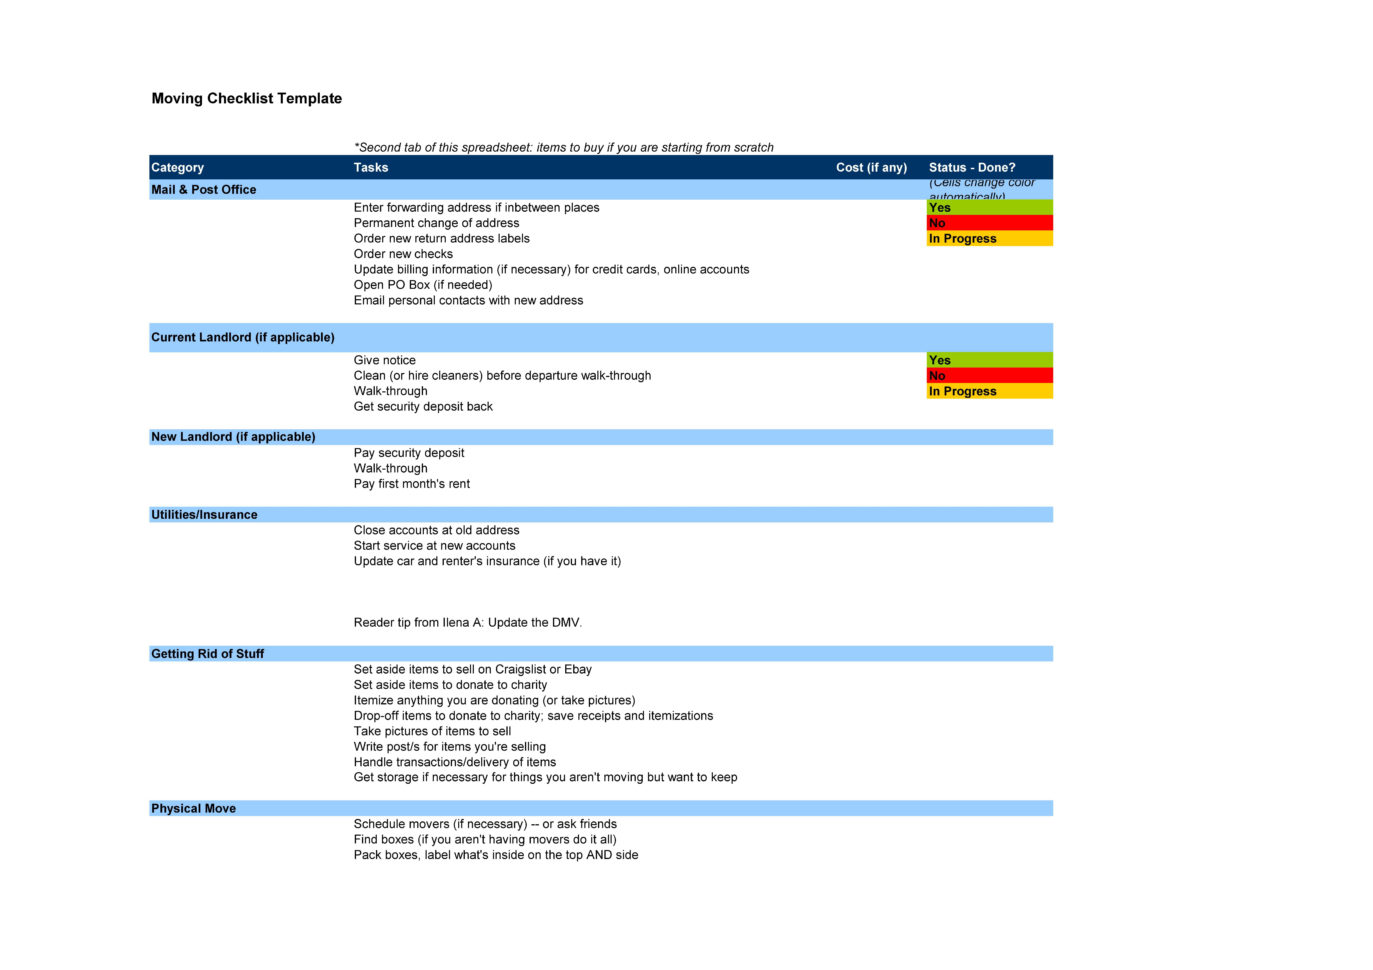 Moving Cost Spreadsheet Intended For 45 Great Moving Checklists [Checklist For Moving In / Out